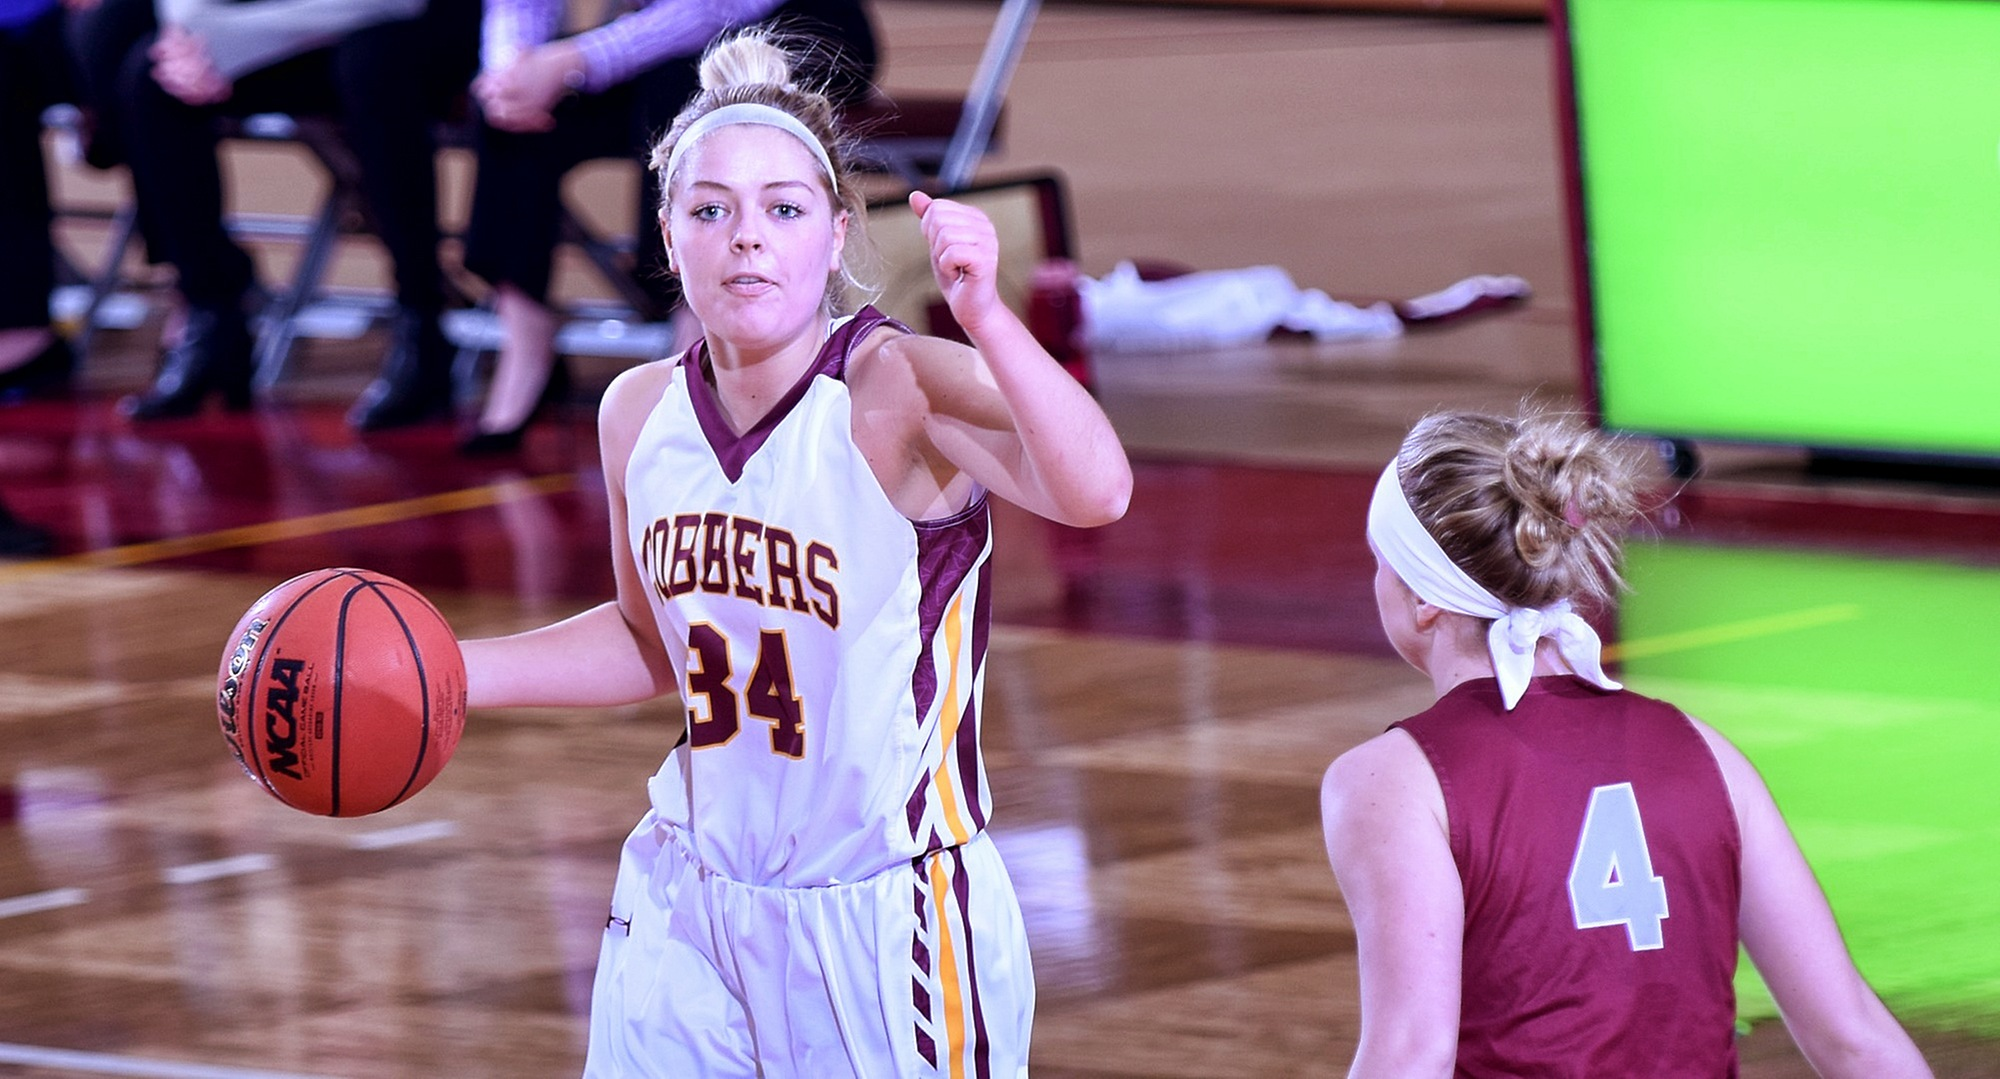 Senior Grace Wolhowe scored eight of her team-high 13 points in the second half to help Concordia beat Hamline 54-50.